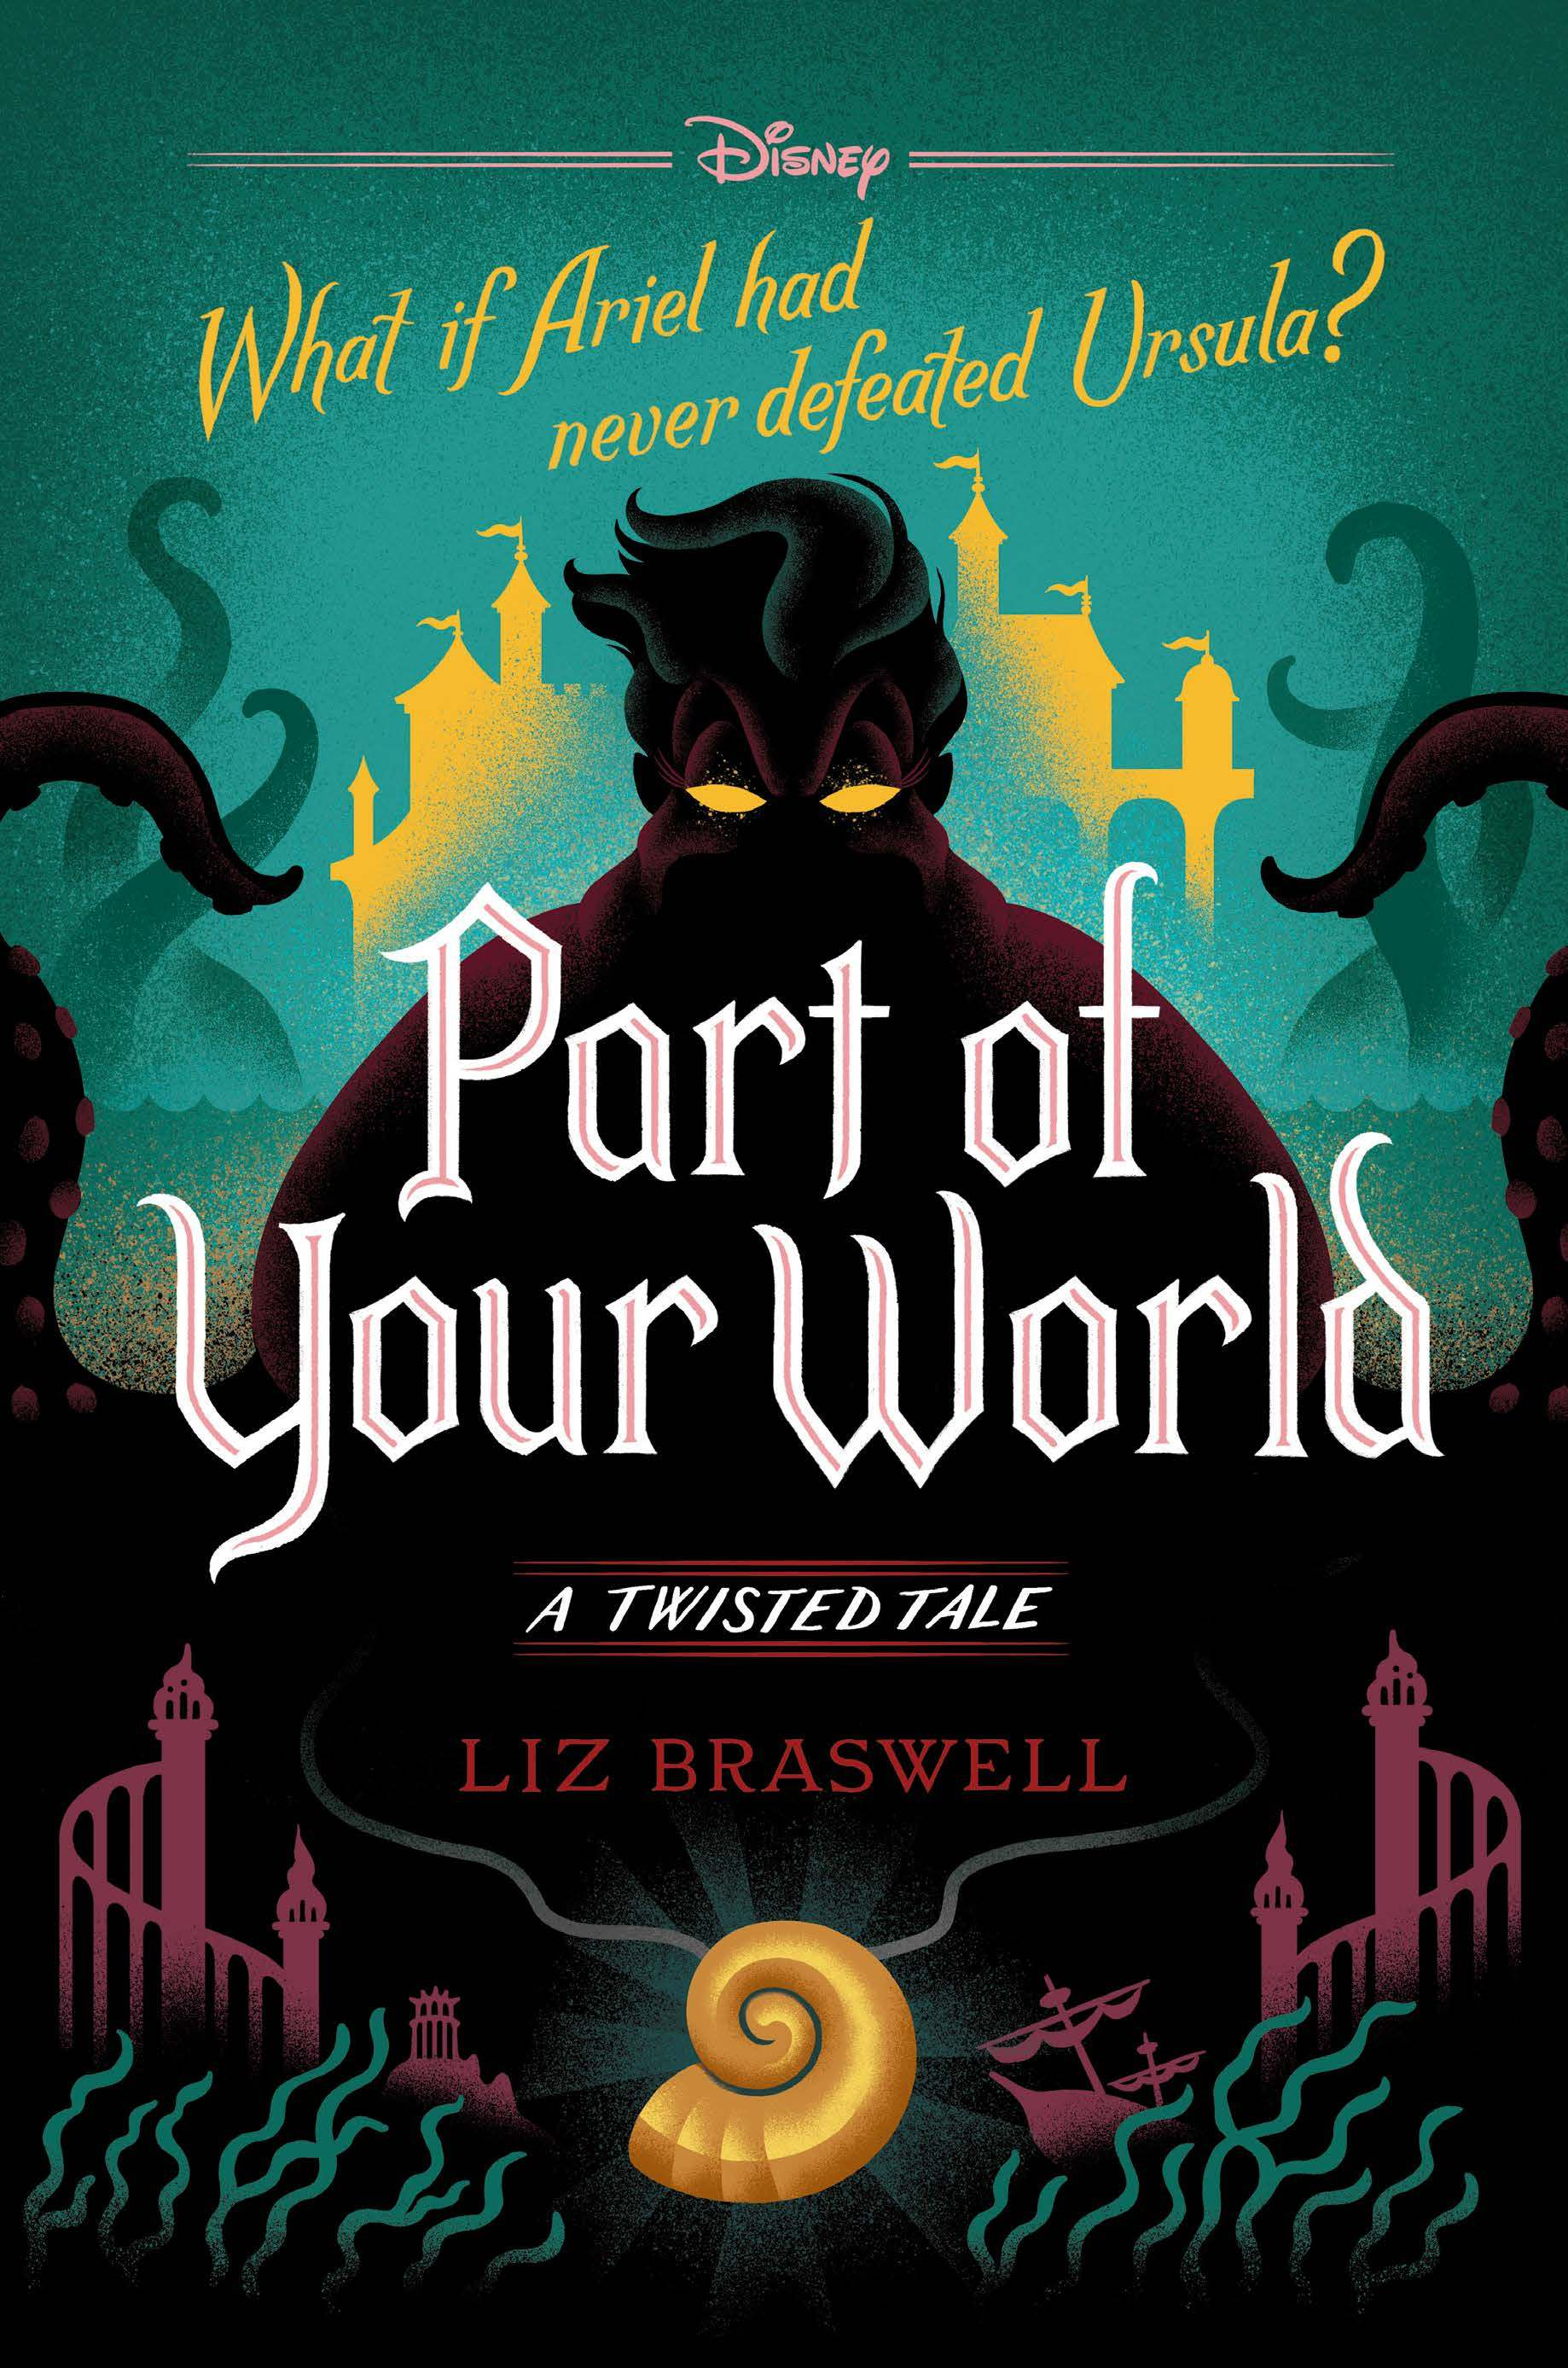 Part of Your World (A Twisted Tale)